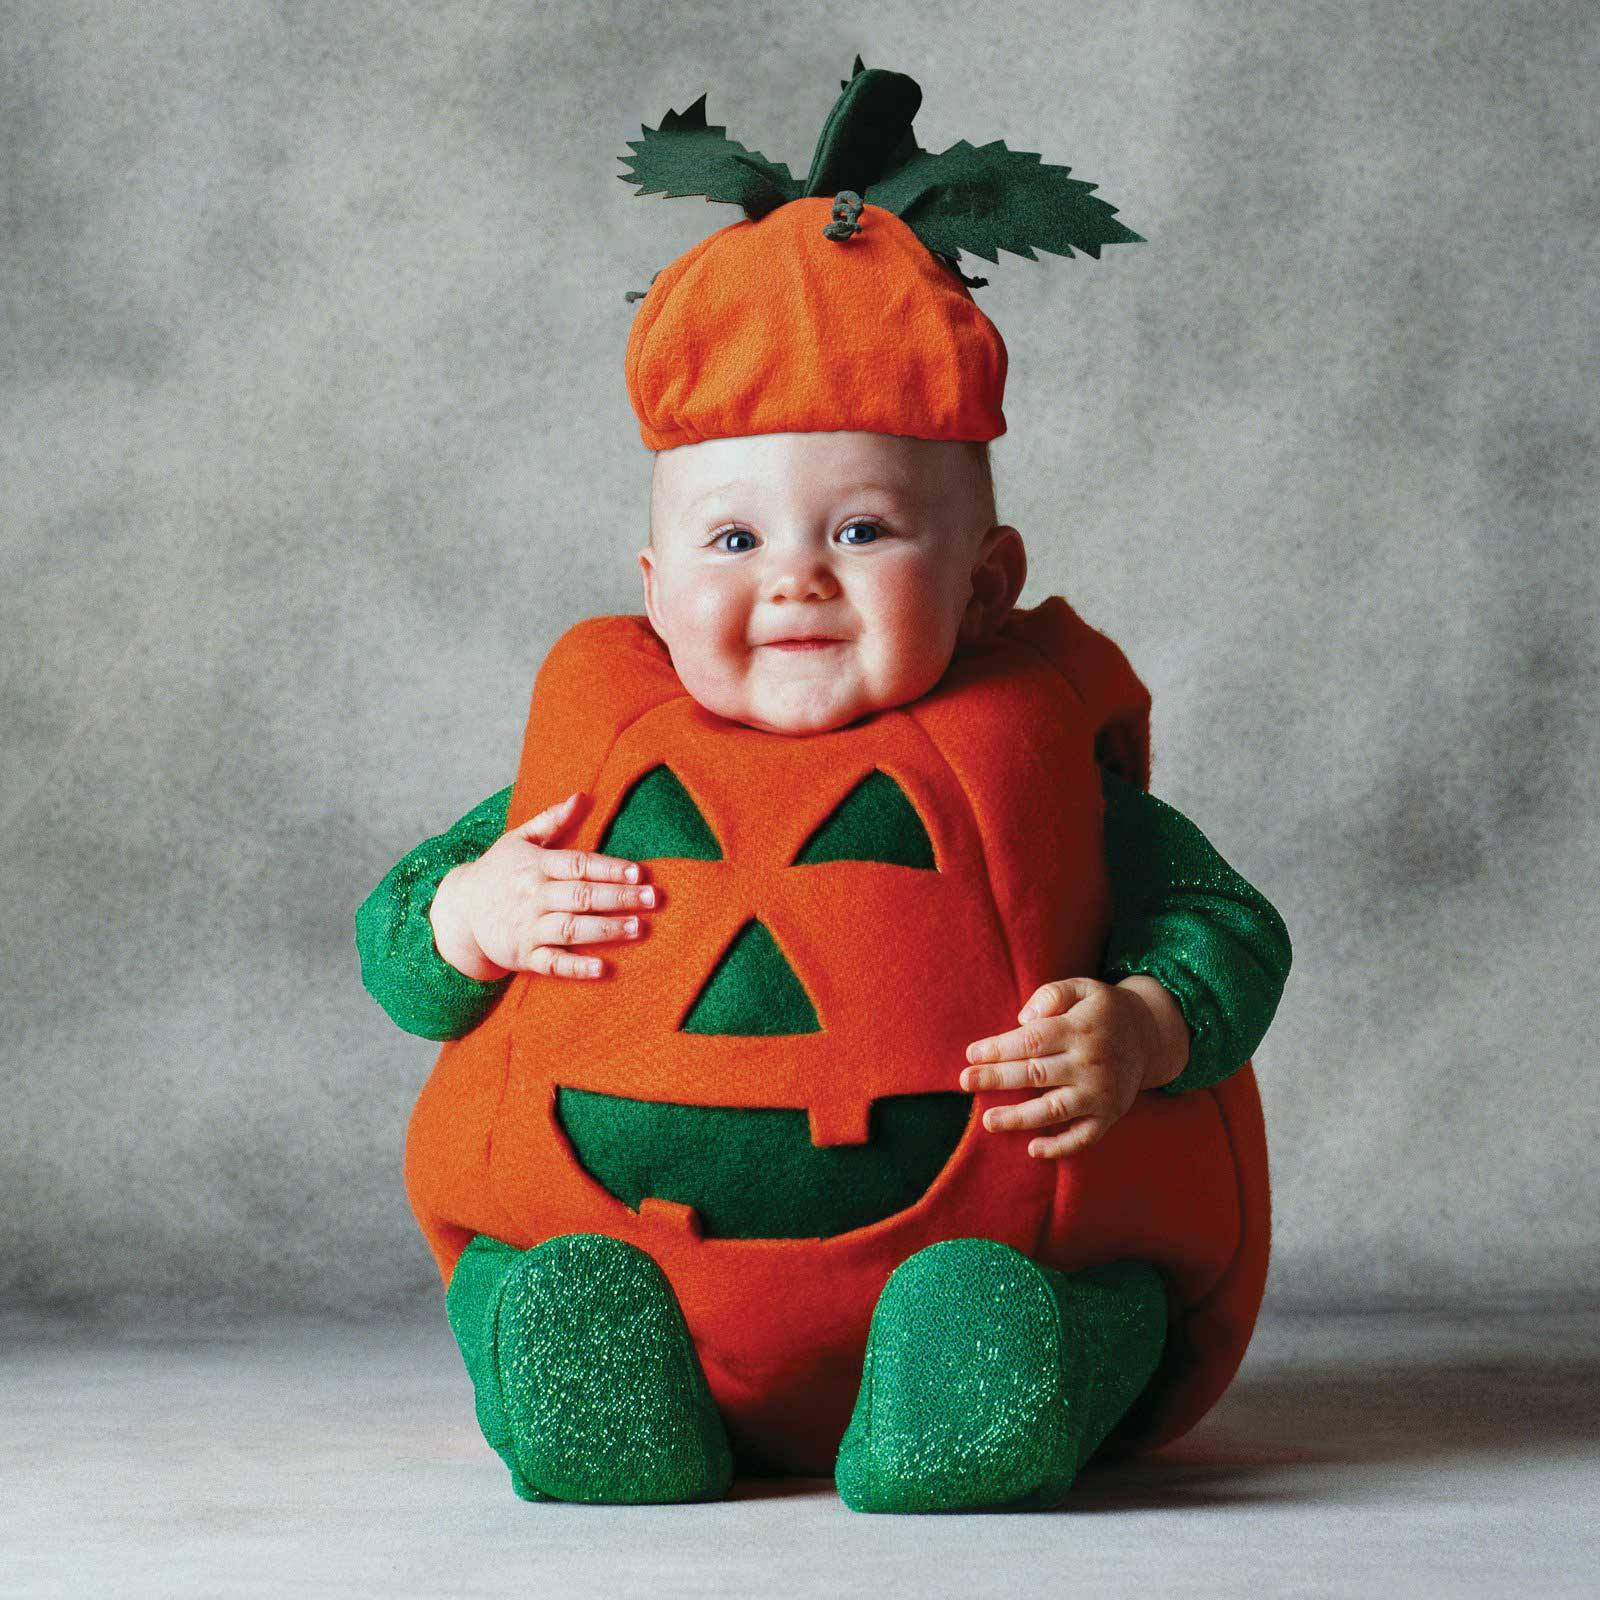 Baby Halloween Costume Ideas 2014